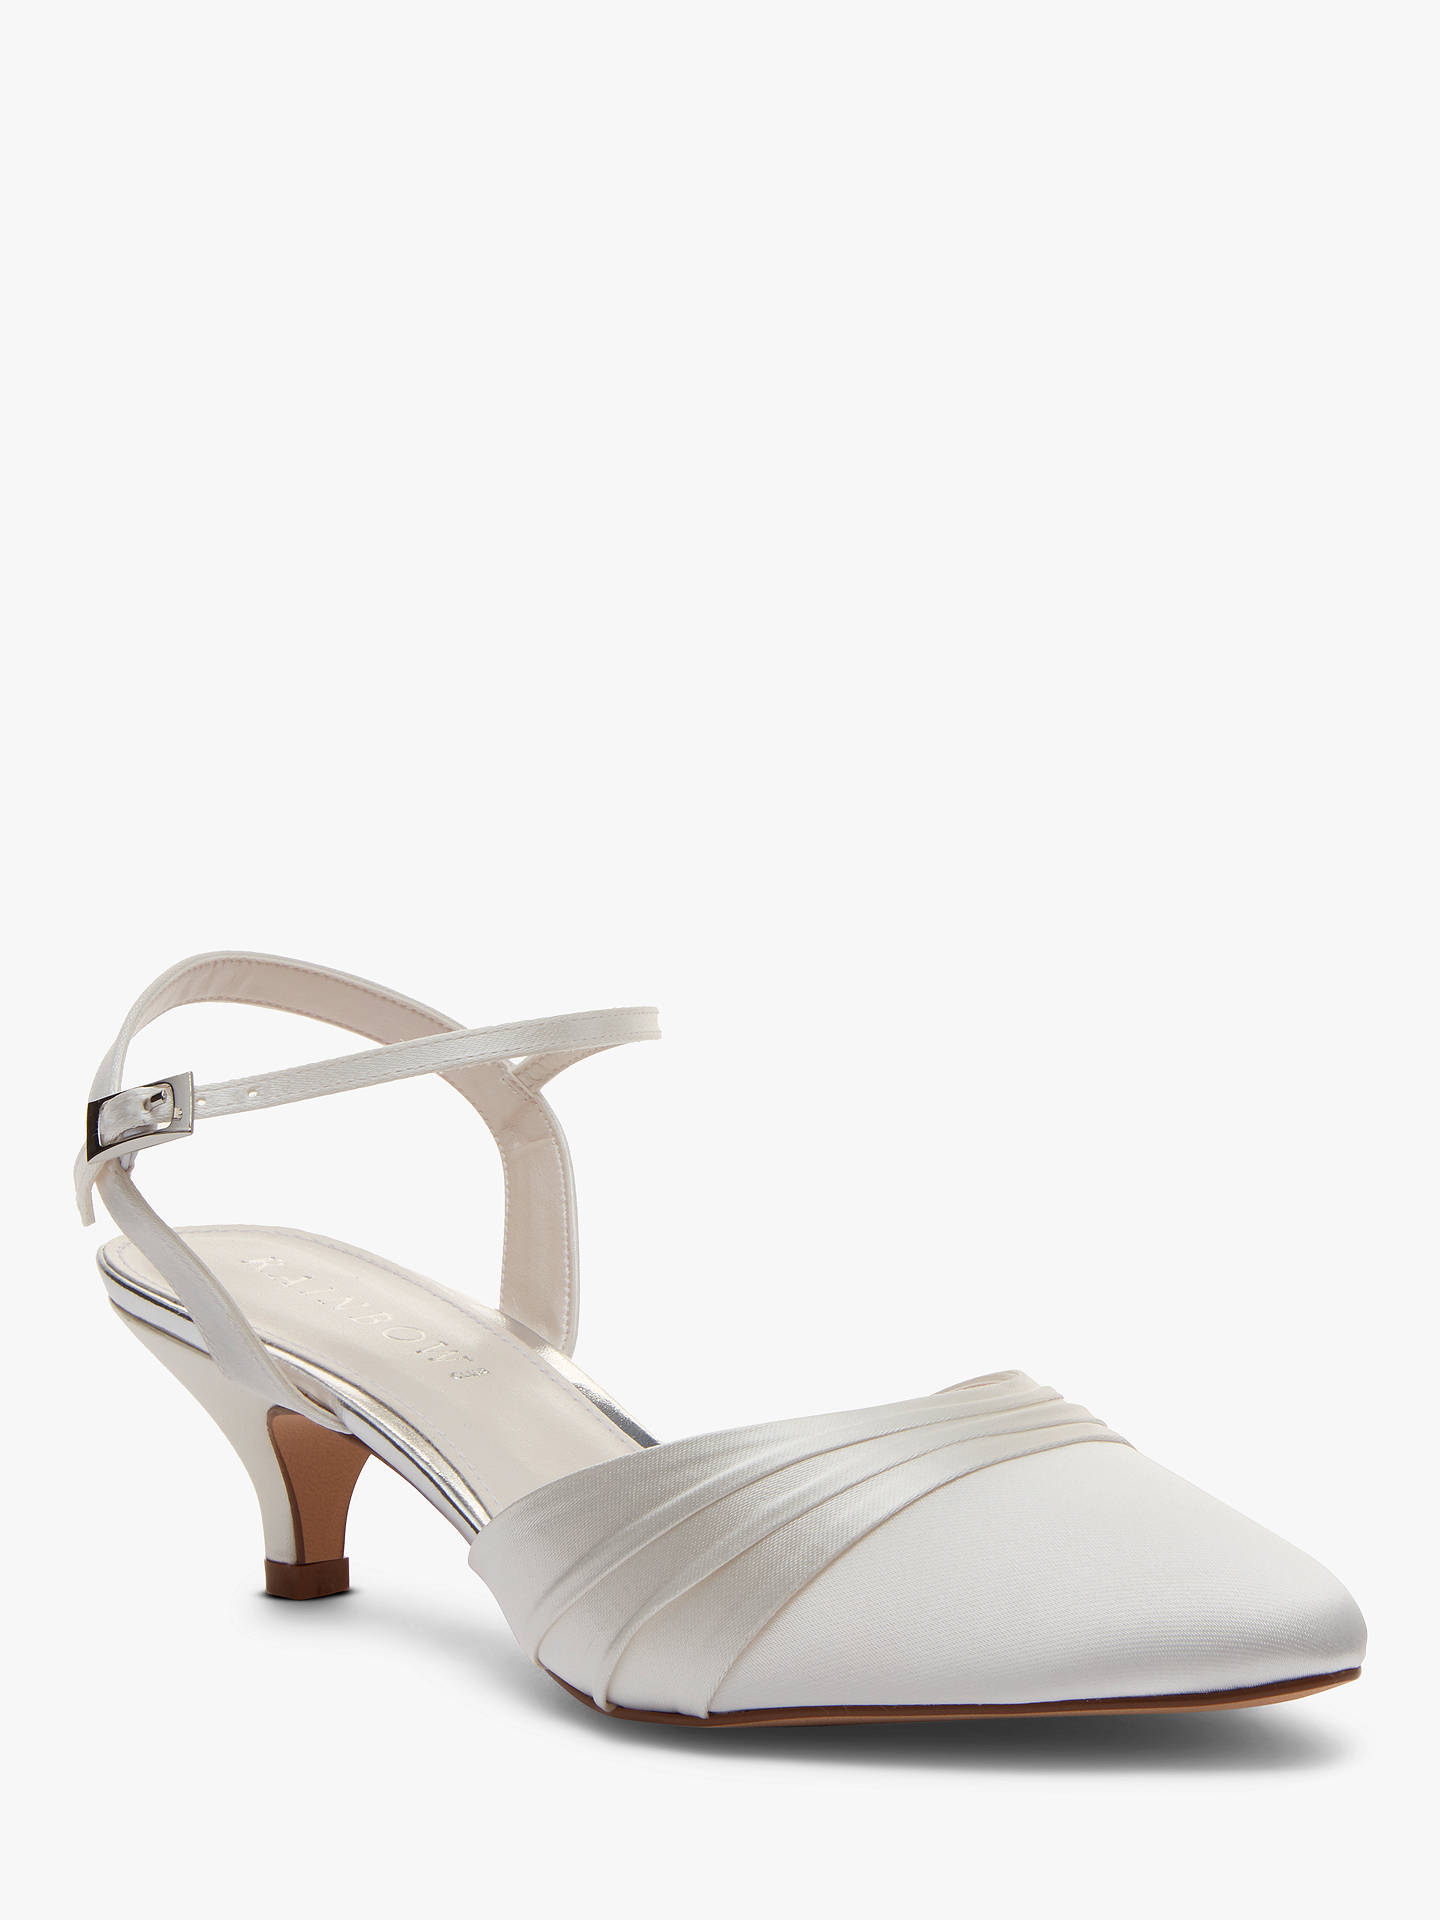 BuyRainbow Club Julie Kitten Heel Court Shoes, Ivory Satin, 3 Online at johnlewis.com